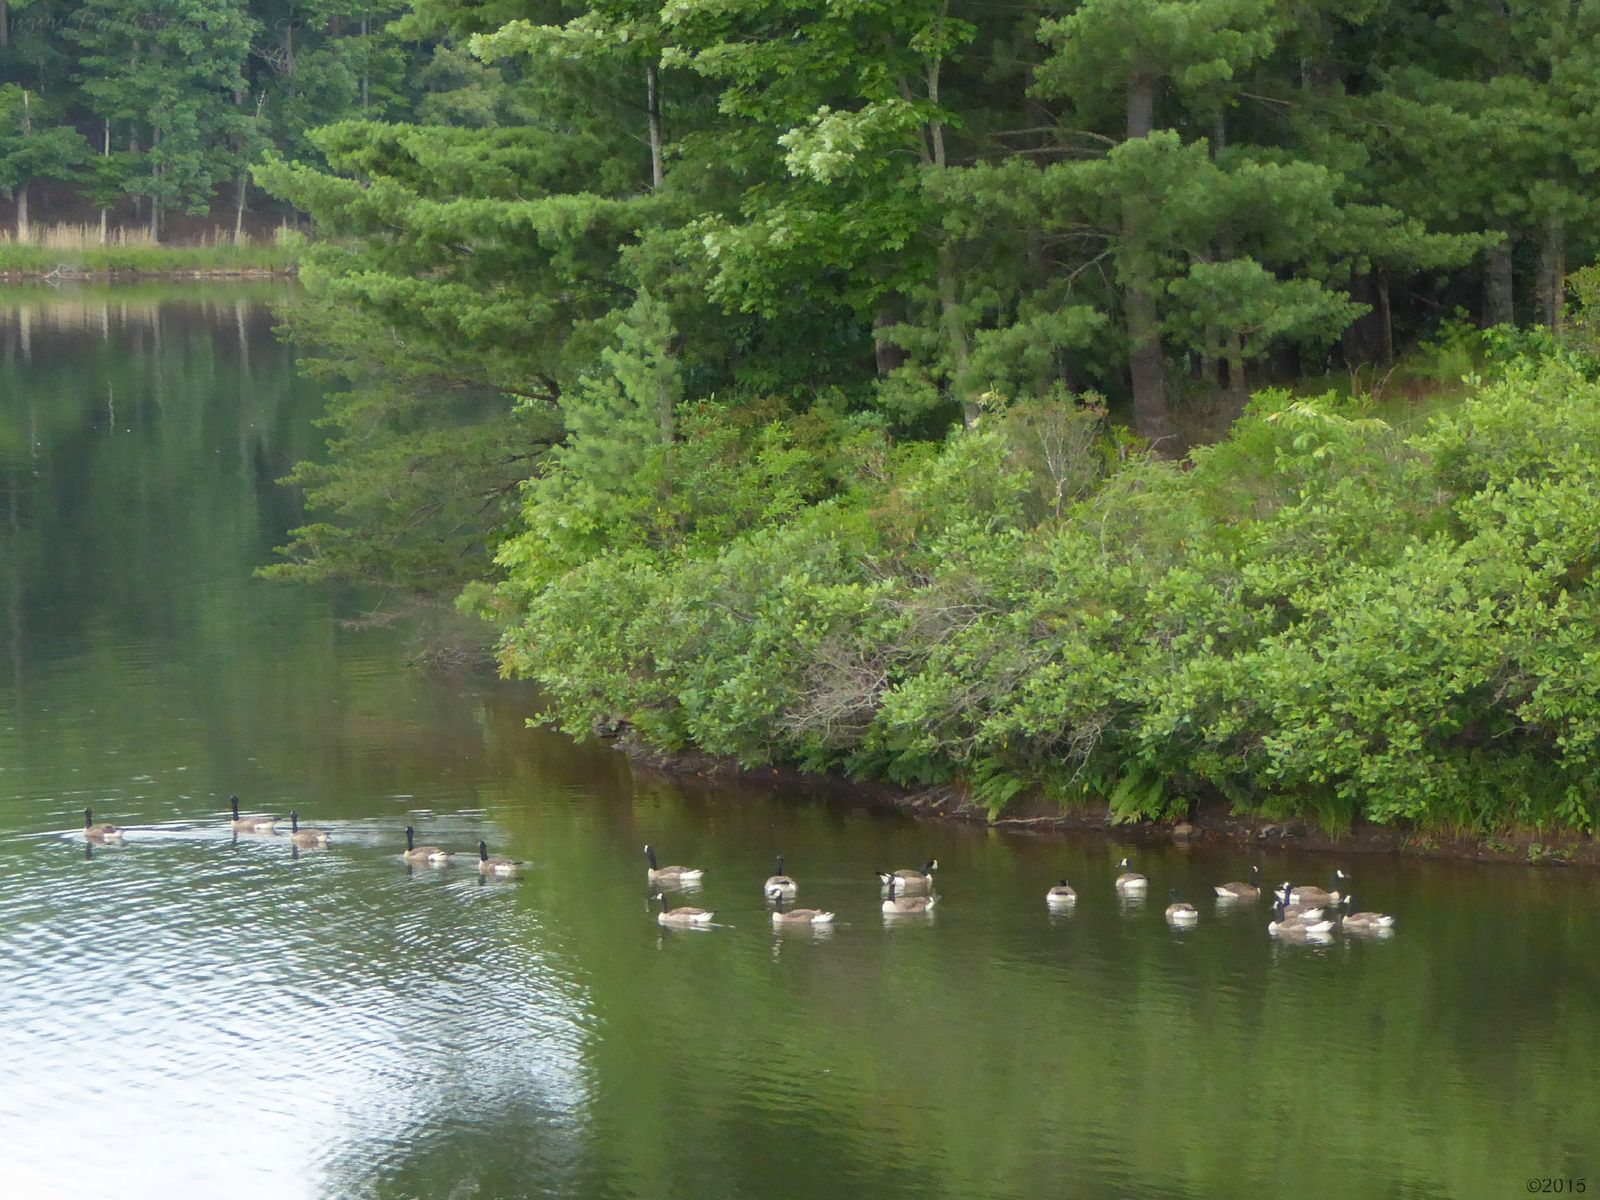 June 30, 2015 - Canada Geese swimming in a quiet part of Lake Tamarack